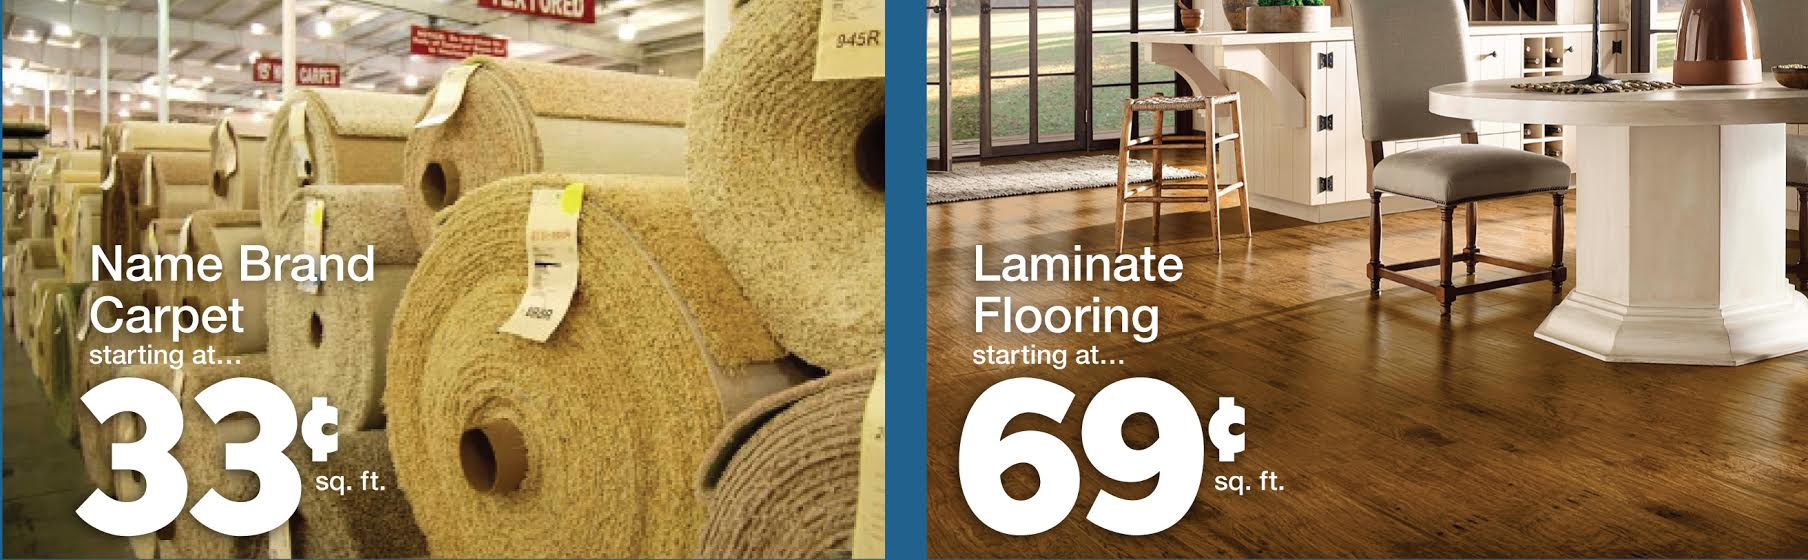 Name Brand Carpet Starting at 33 Cents per sq ft + Laminate Flooring Starting at 69 Cents per sq ft